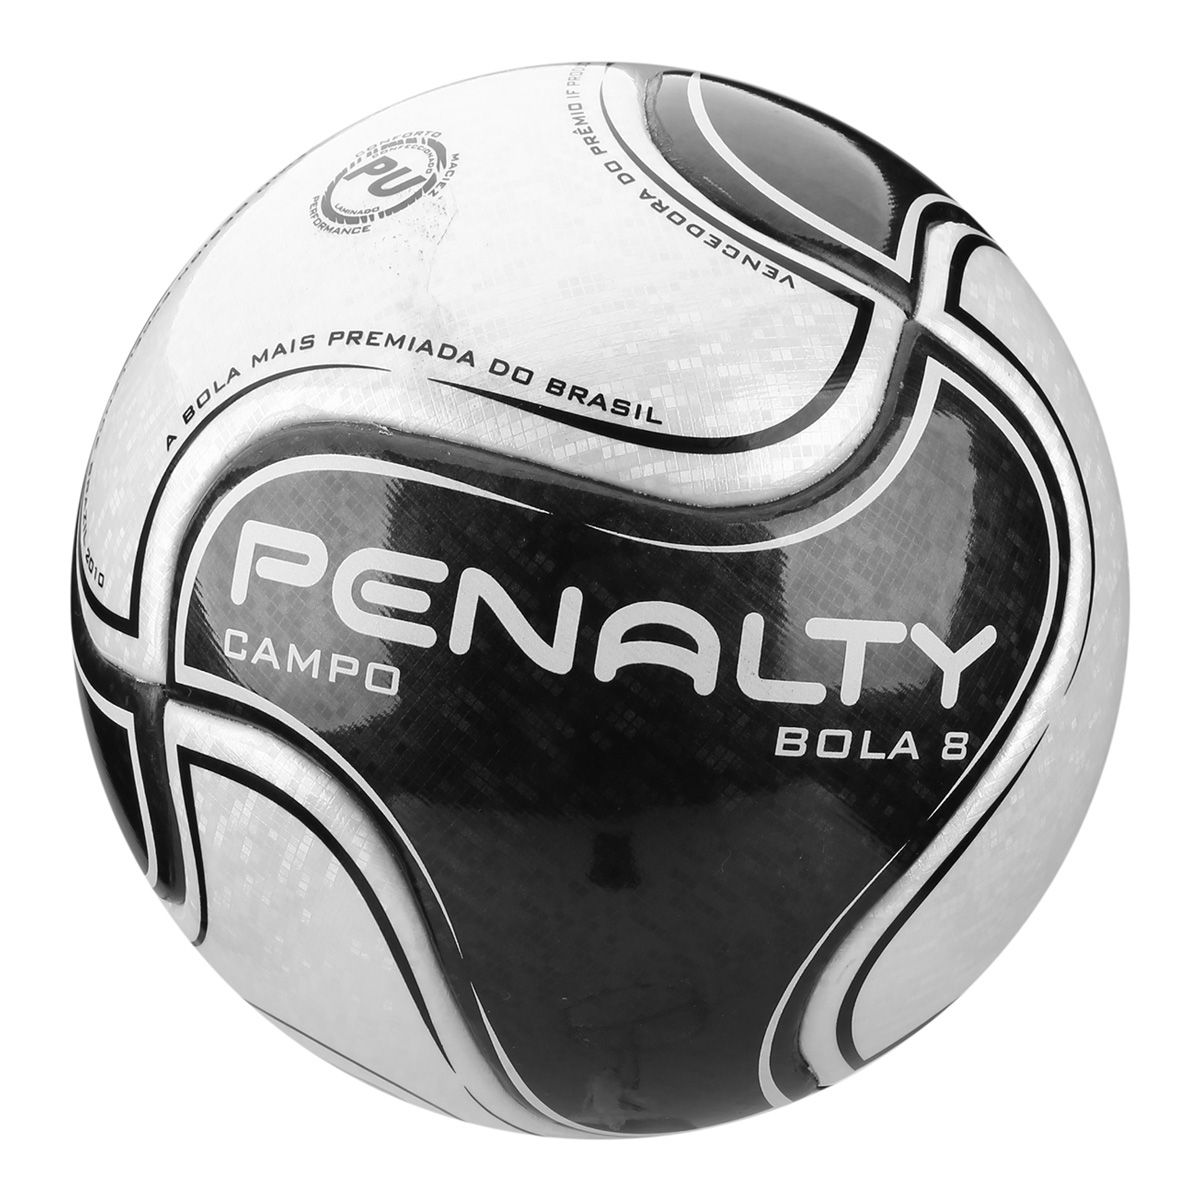 Kit C/2 Bolas Campo Penalty 8 IX